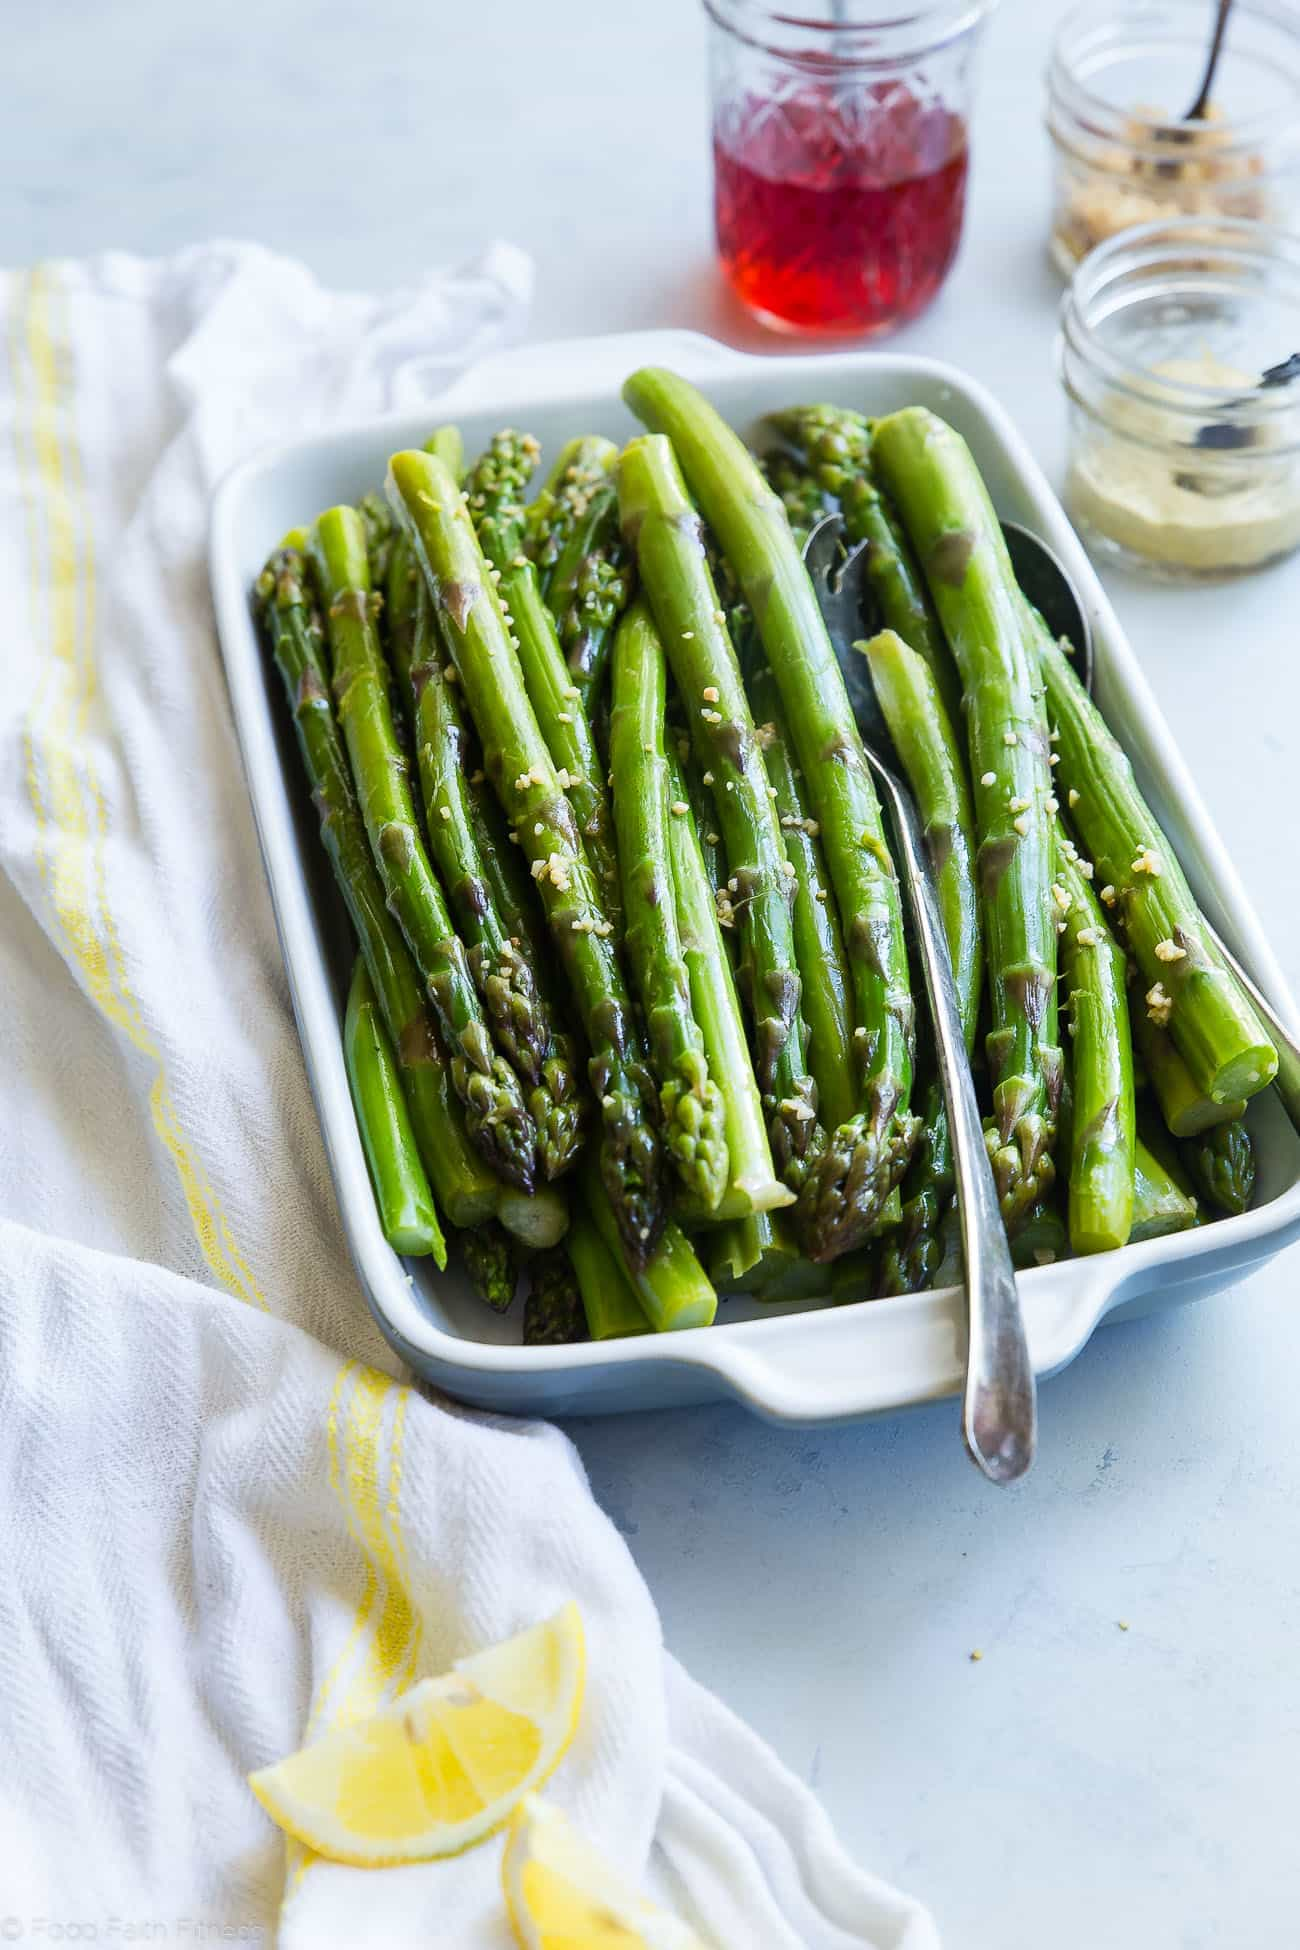 Blanched asparagus in a serving dish. Recipe on foodfaithfitness.com